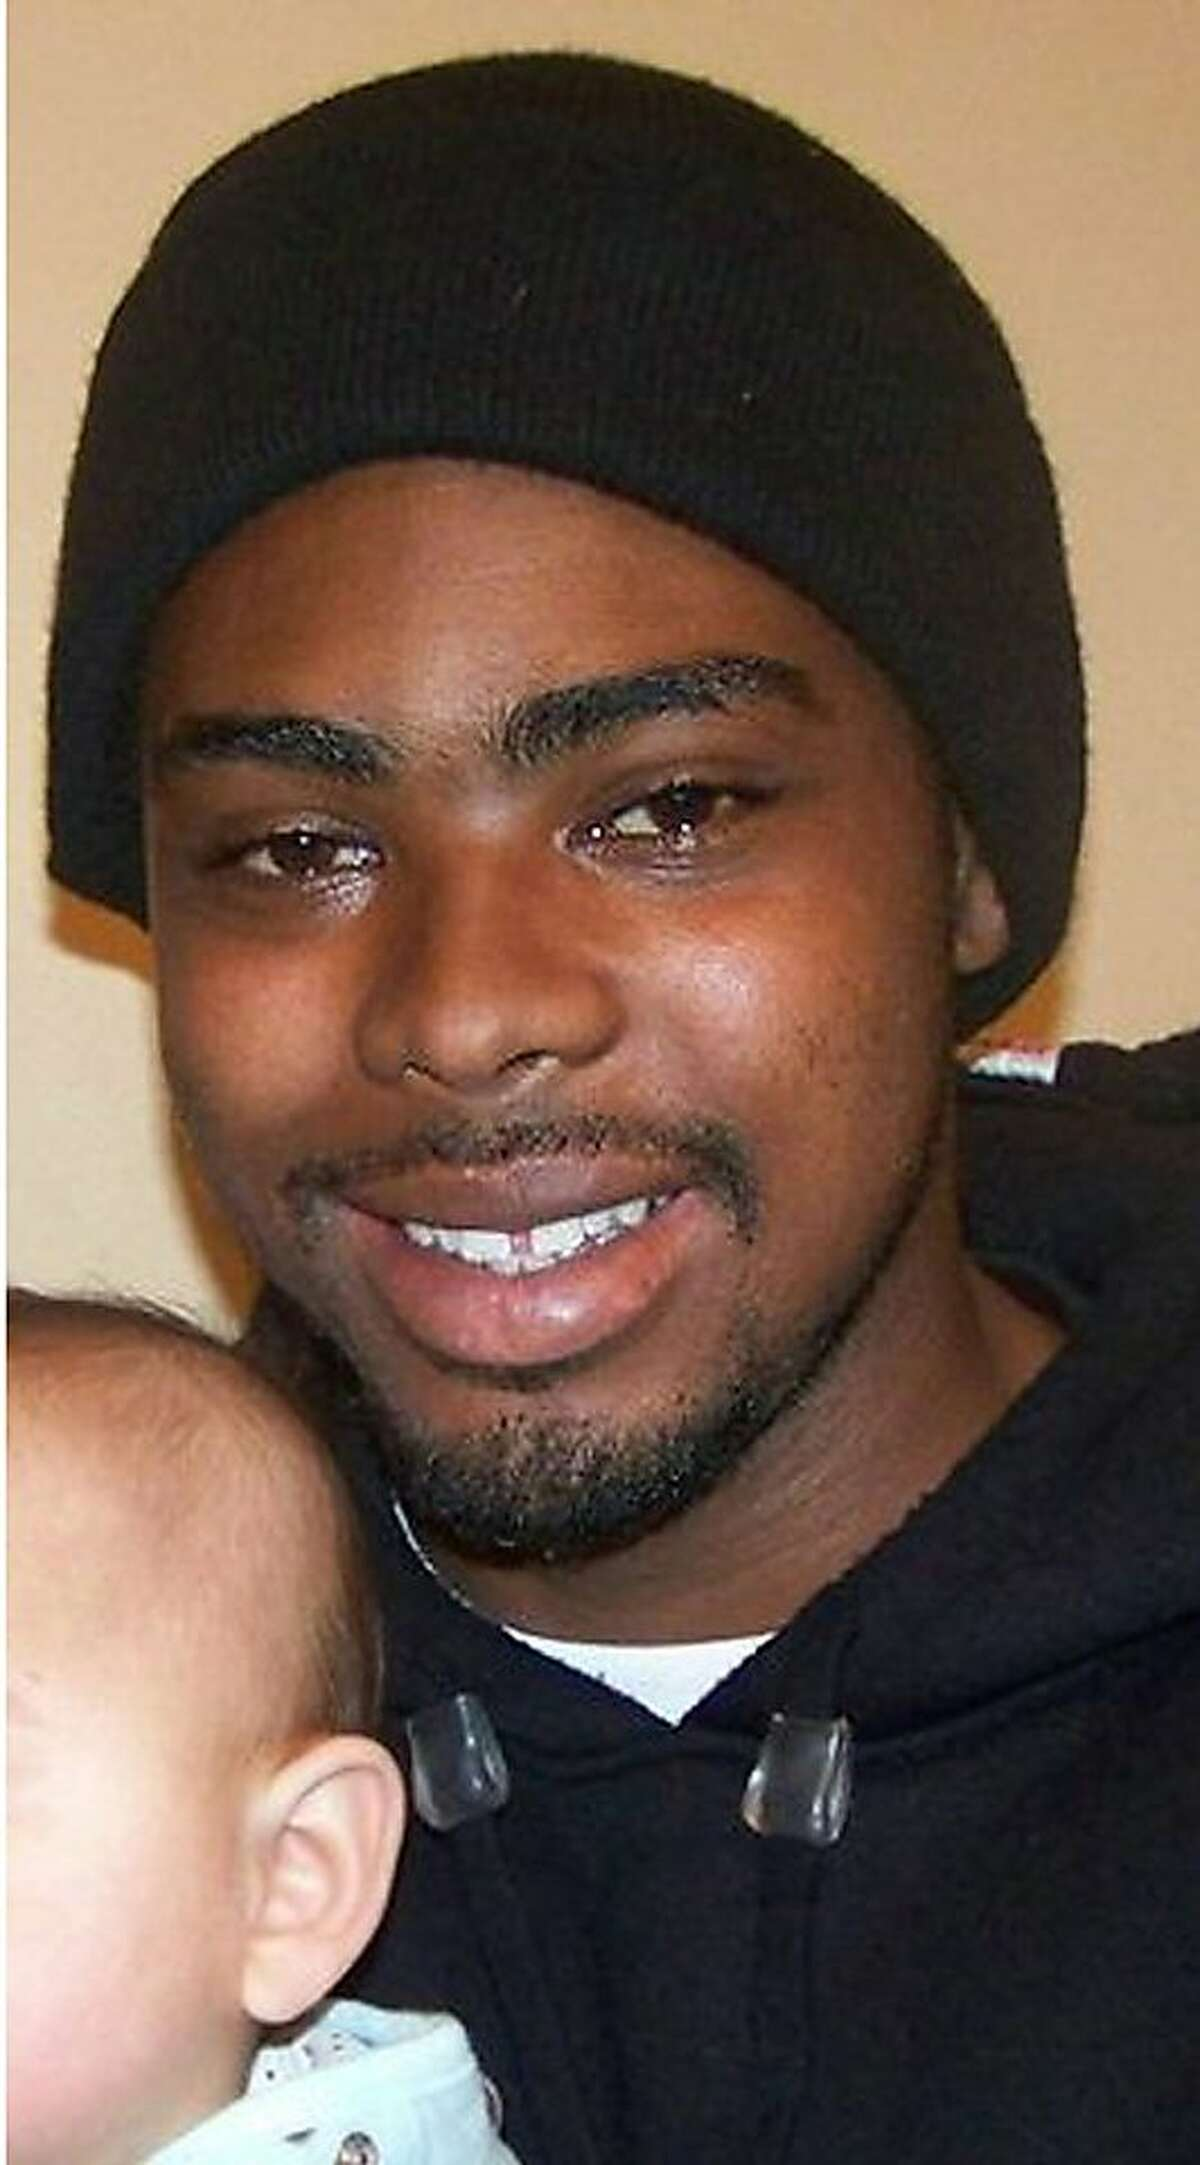 Oscar Grant, a 22-year-old transit rider who was shot and killed by Bay Area Rapid Transit police on New Year's Day 2009.